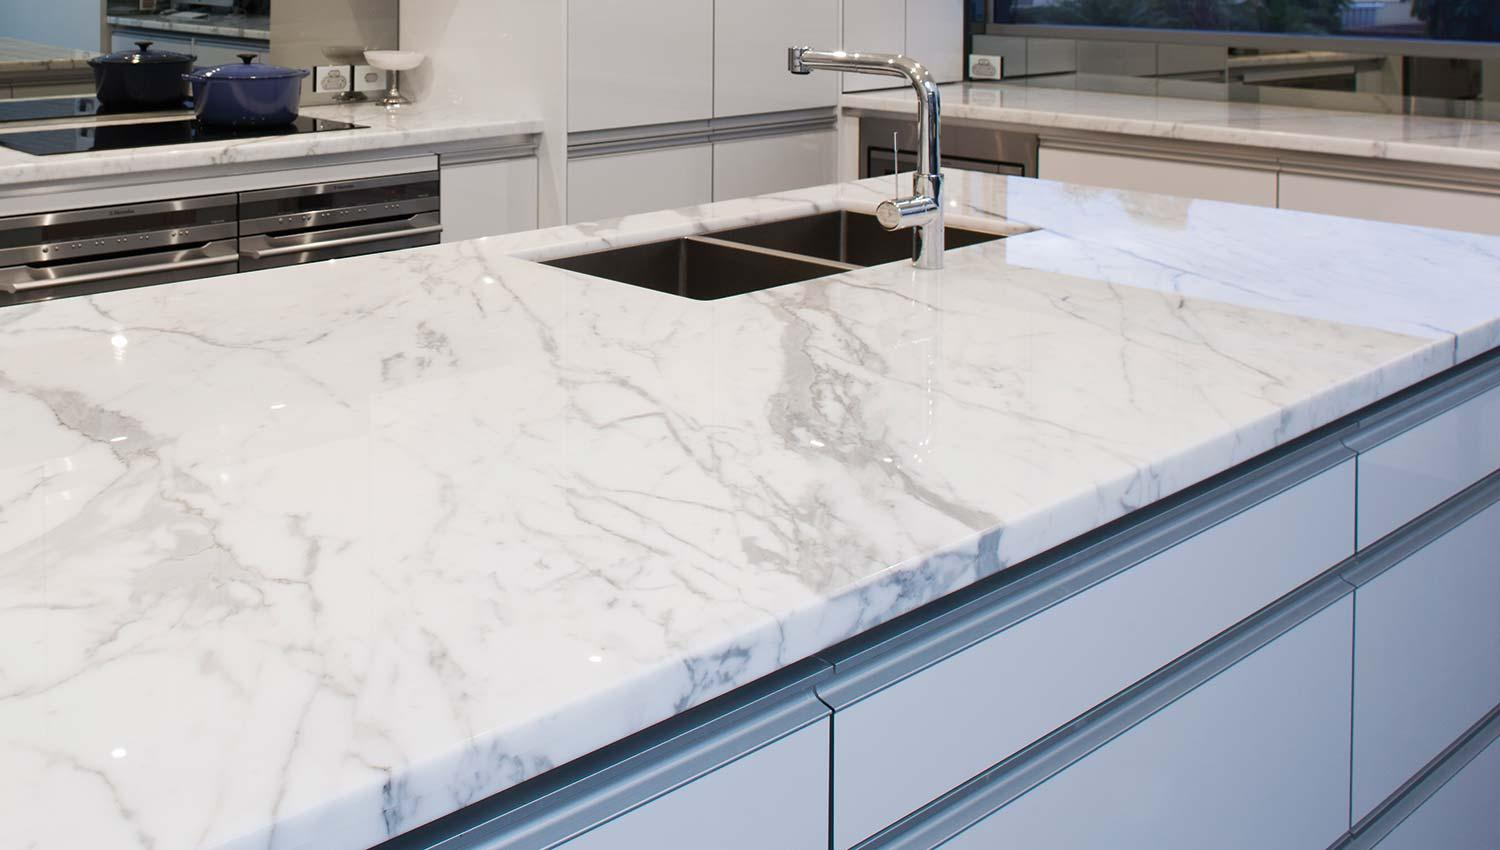 About Granite Quartz Countertops Experts Fabrication And Installation